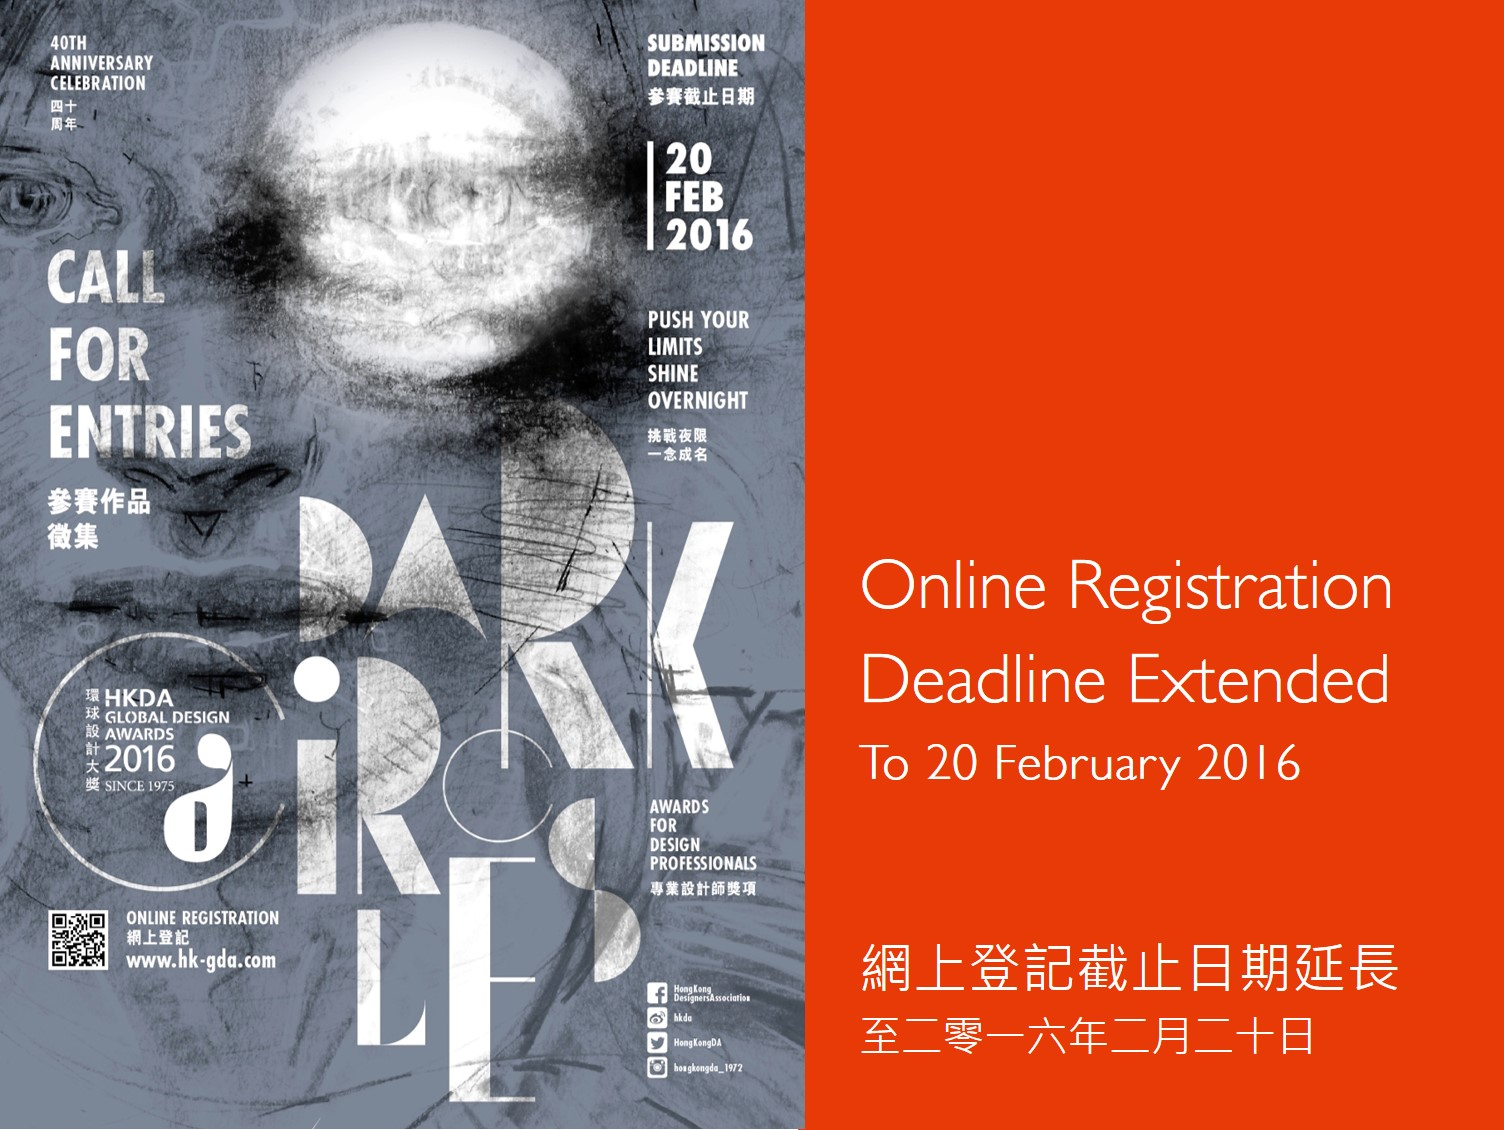 HKDA GLOBAL DESIGN AWARDS 2016